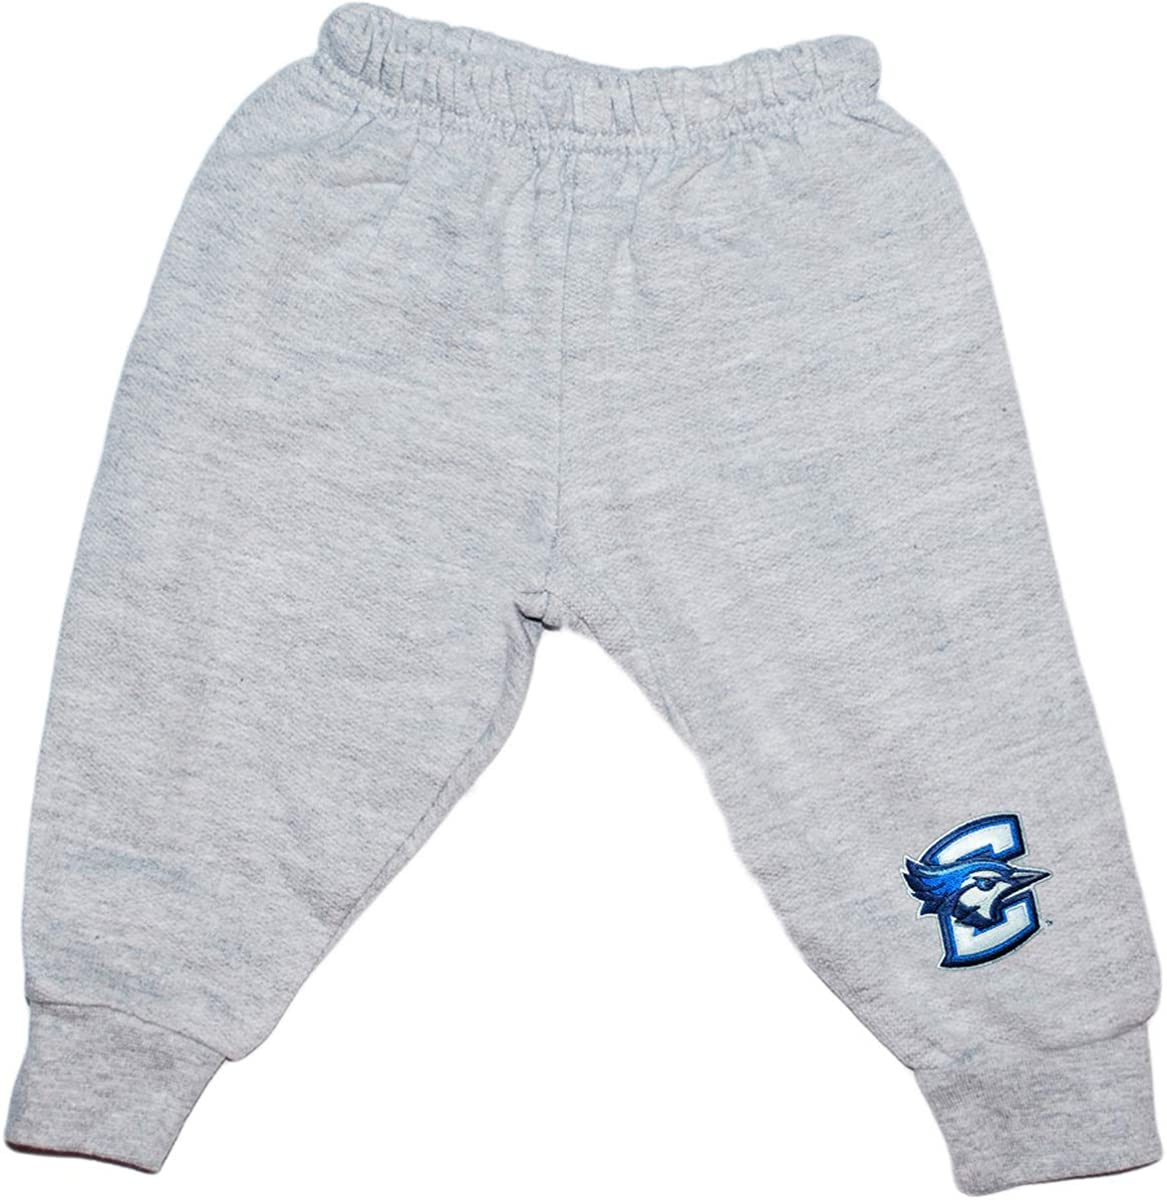 Creative Knitwear Very popular Max 69% OFF Creighton University Baby Pa Sweat and Toddler